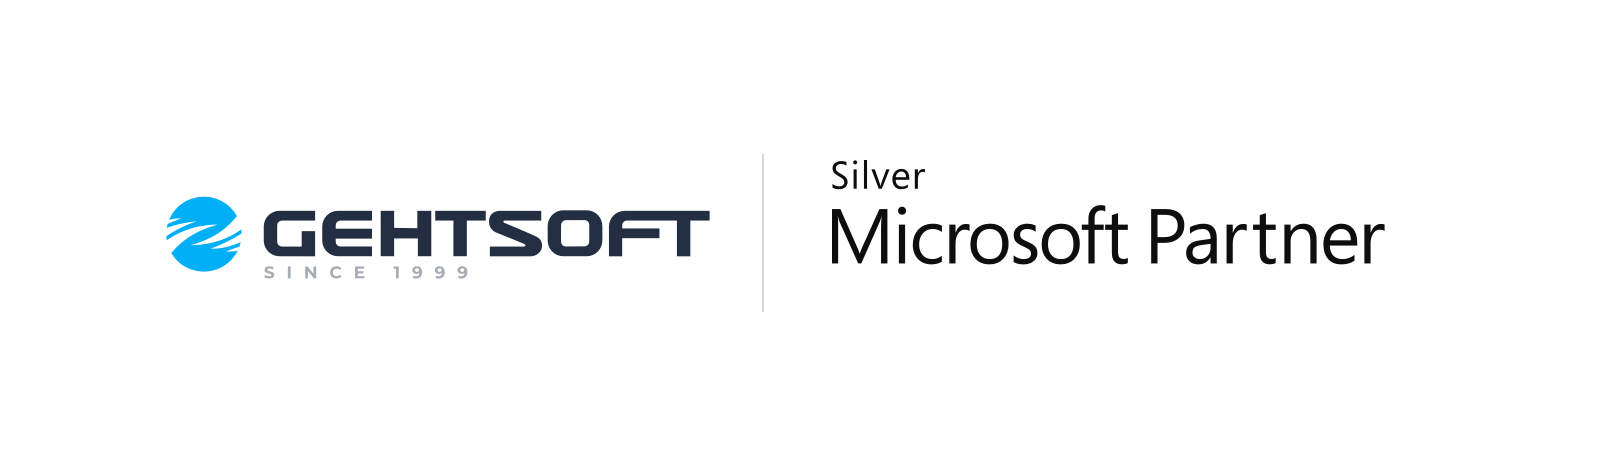 Gehtsoft is now a Microsoft Silver Partner